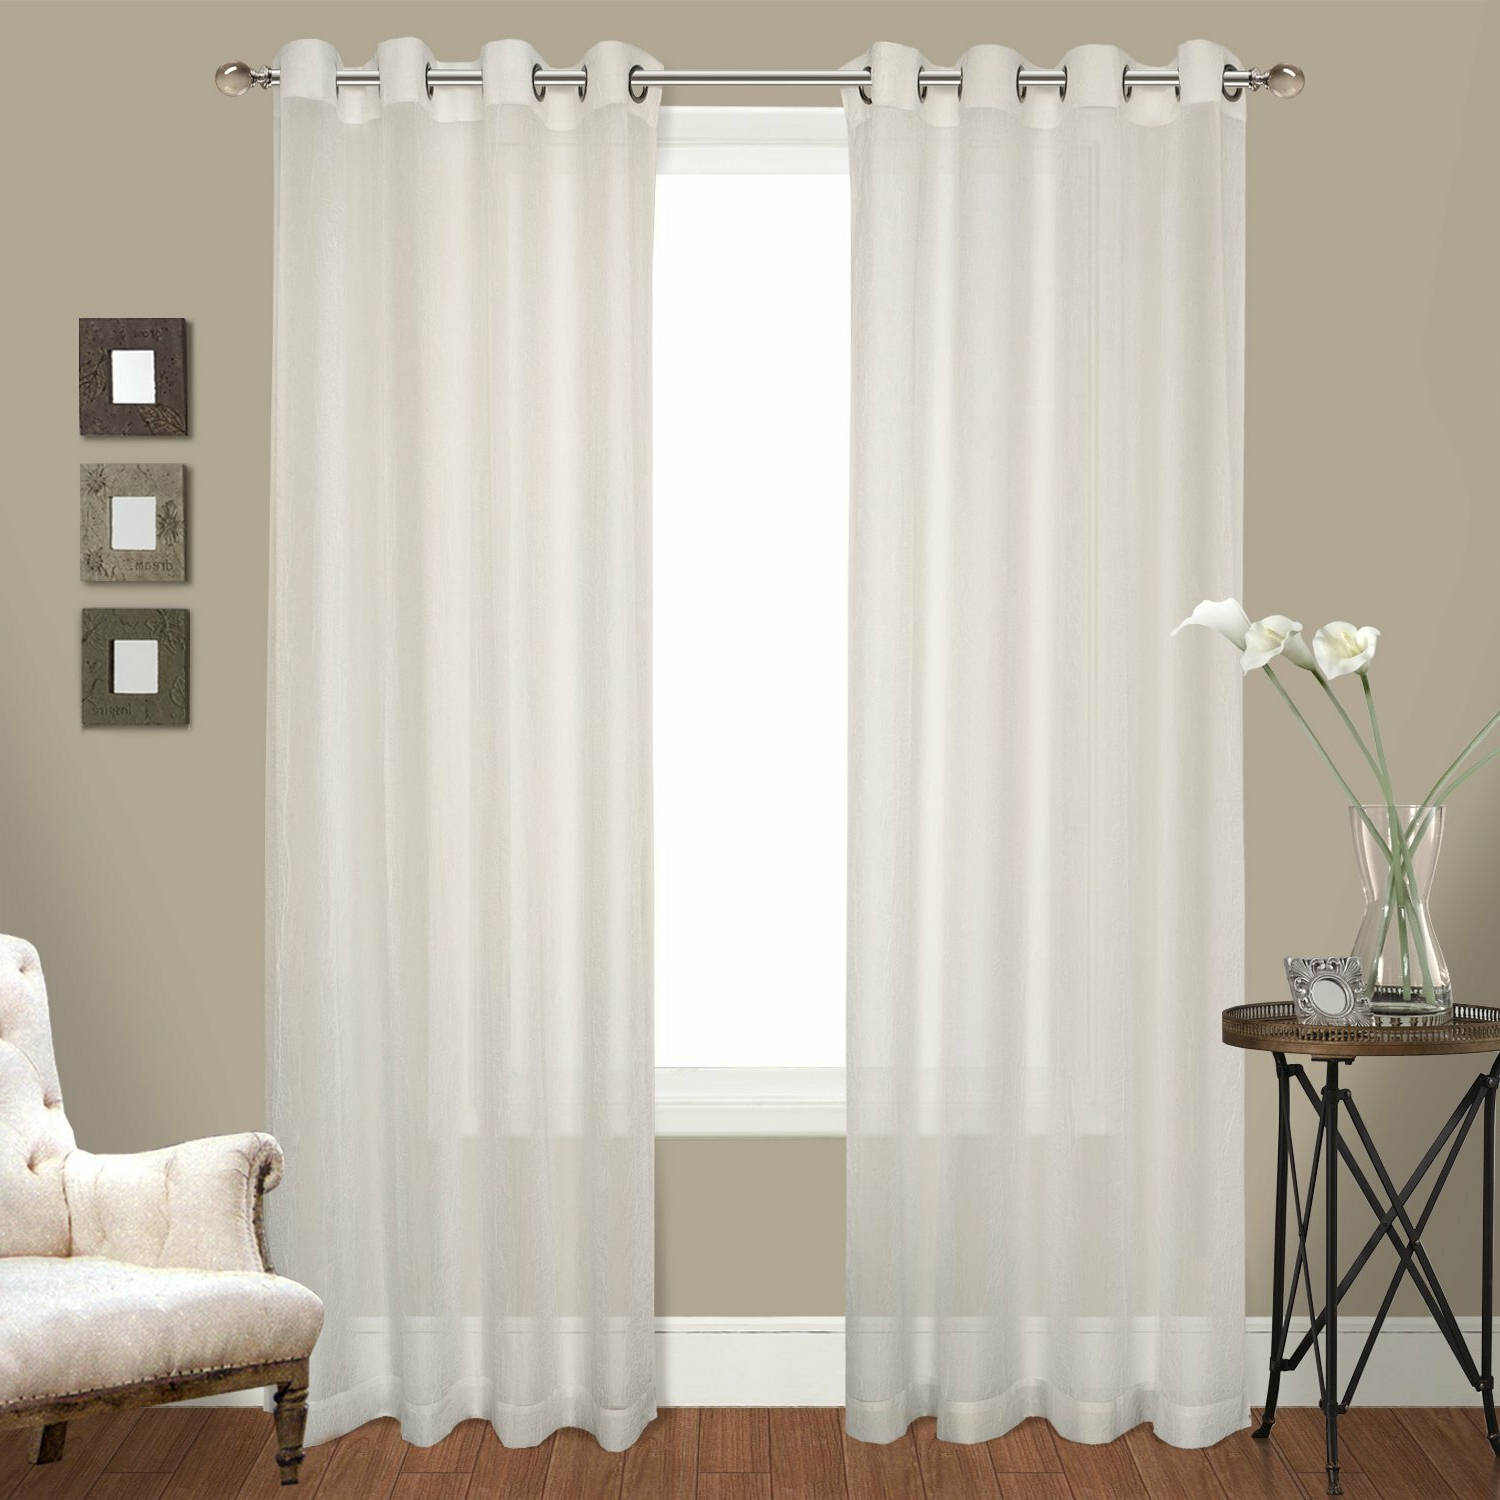 Curtain Panel Pairs In 2020 Ortley Crushed Voile Solid Sheer Grommet Curtain Panel Pair (View 13 of 20)